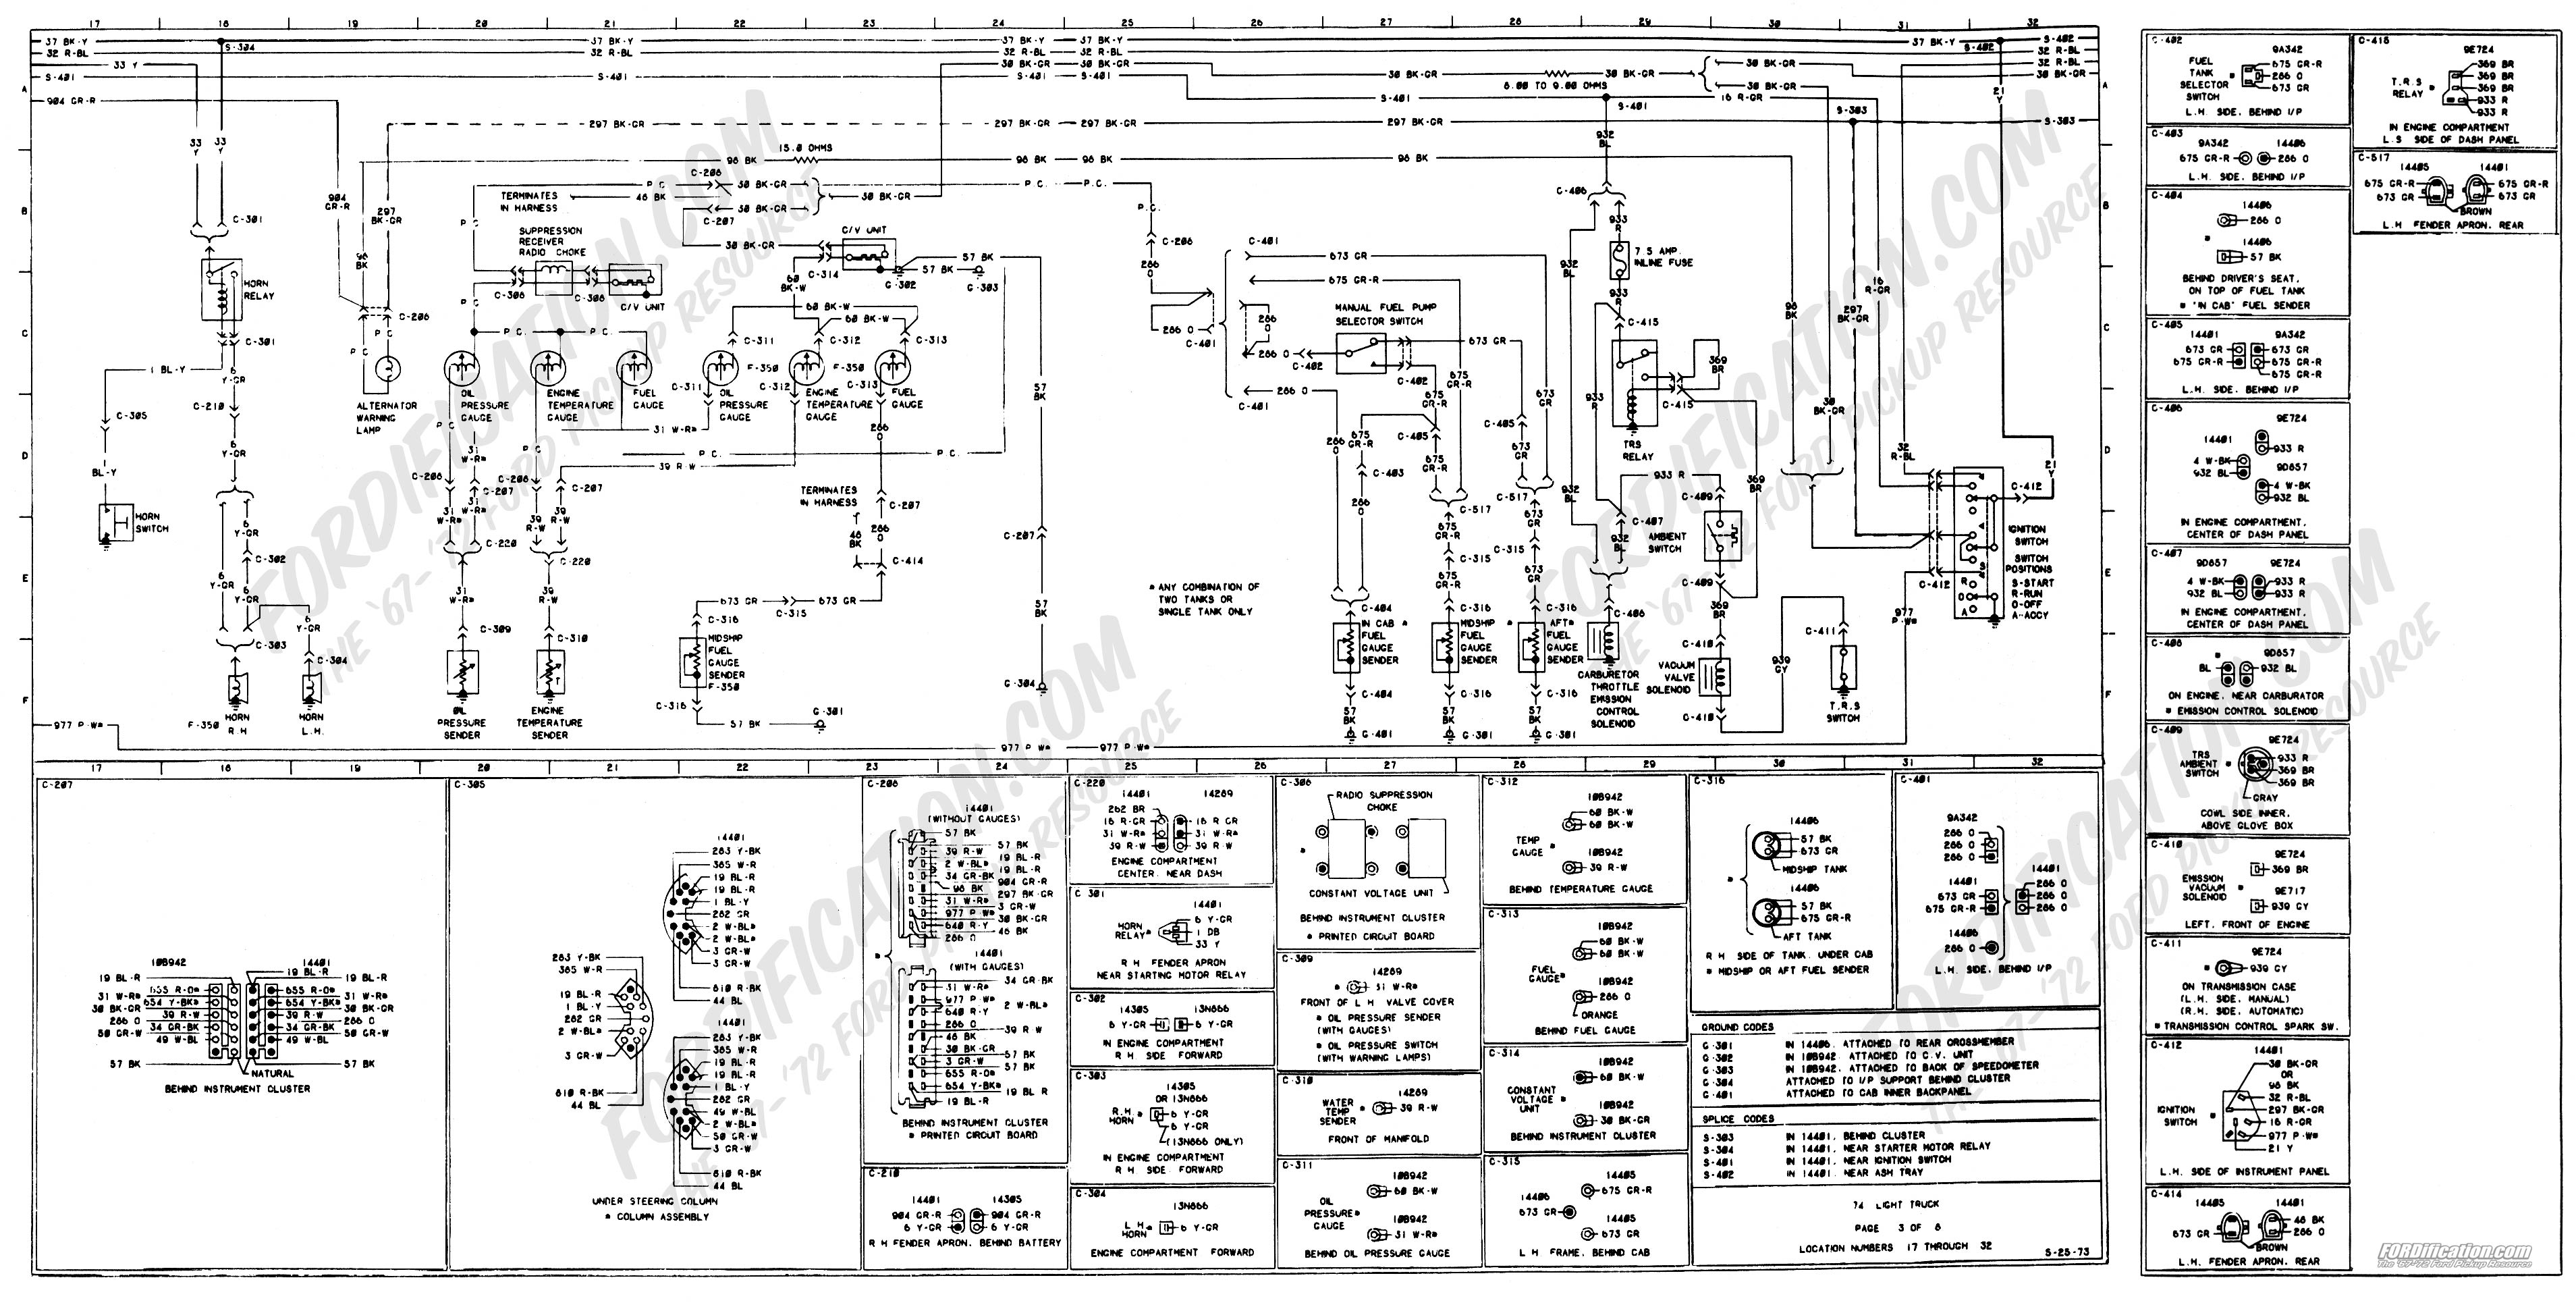 F350 Wiring Diagrams Library Ford Flex Steering Column Diagram F250 Page 03